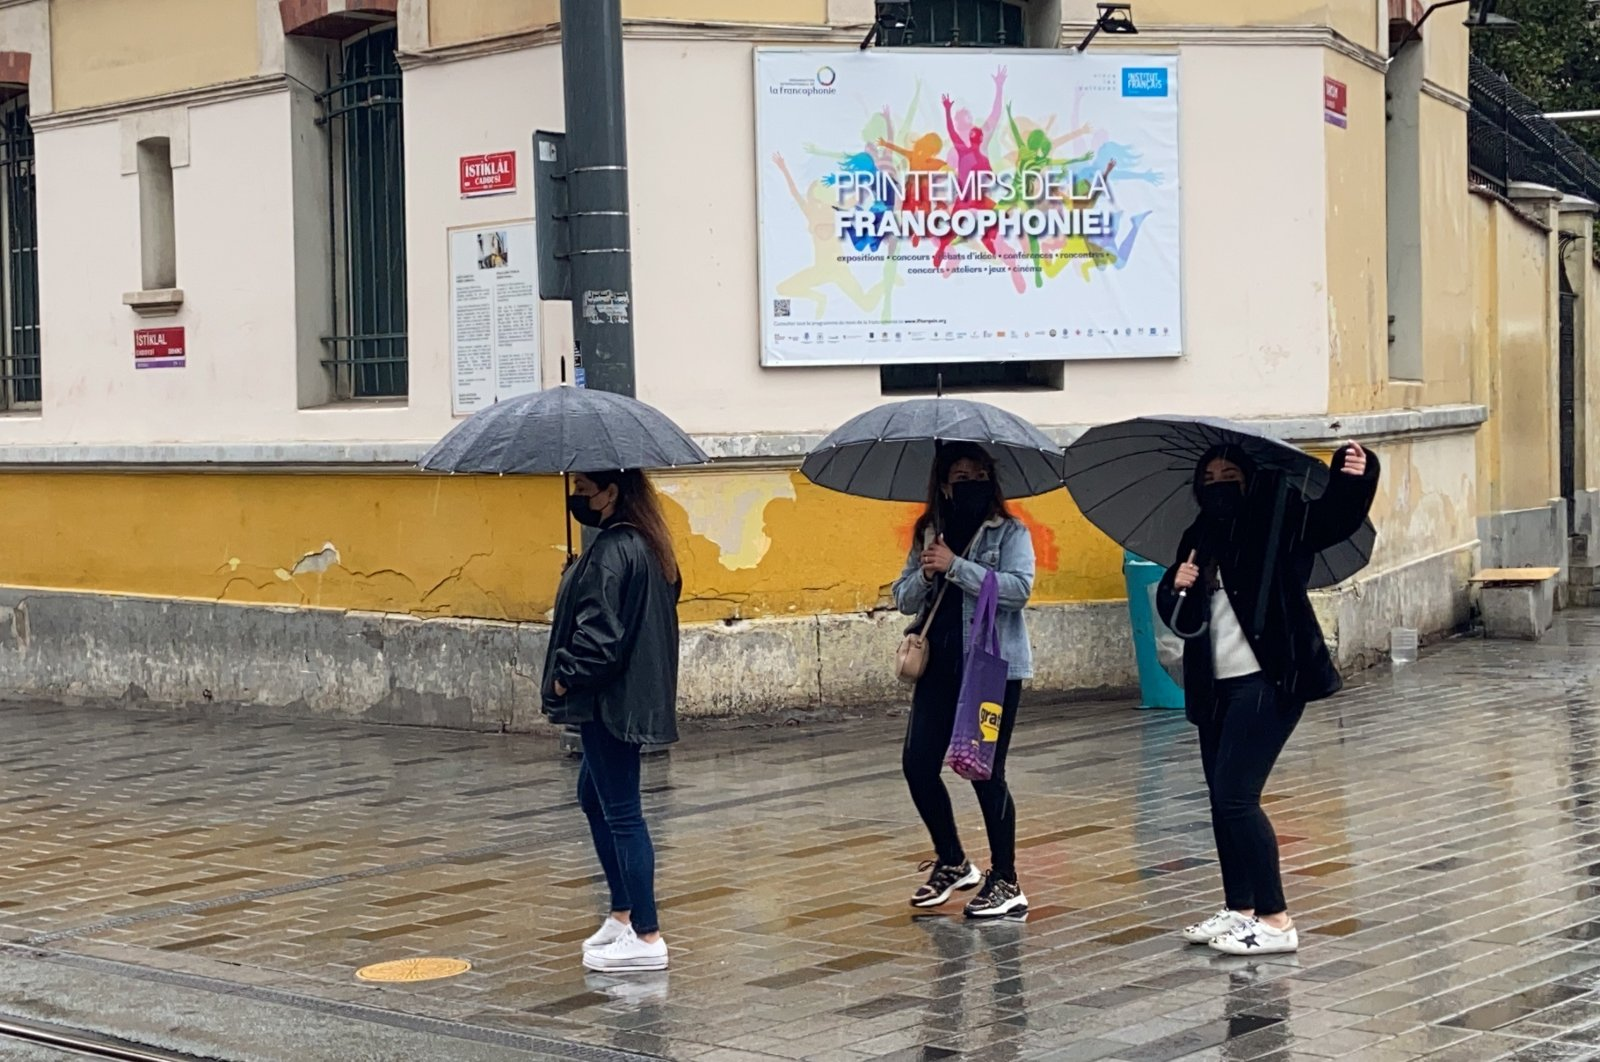 University students are seen standing in Istanbul's famous Istiklal Avenue during the COVID-19 pandemic in Istanbul, Turkey, April 17, 2021 (IHA Photo)